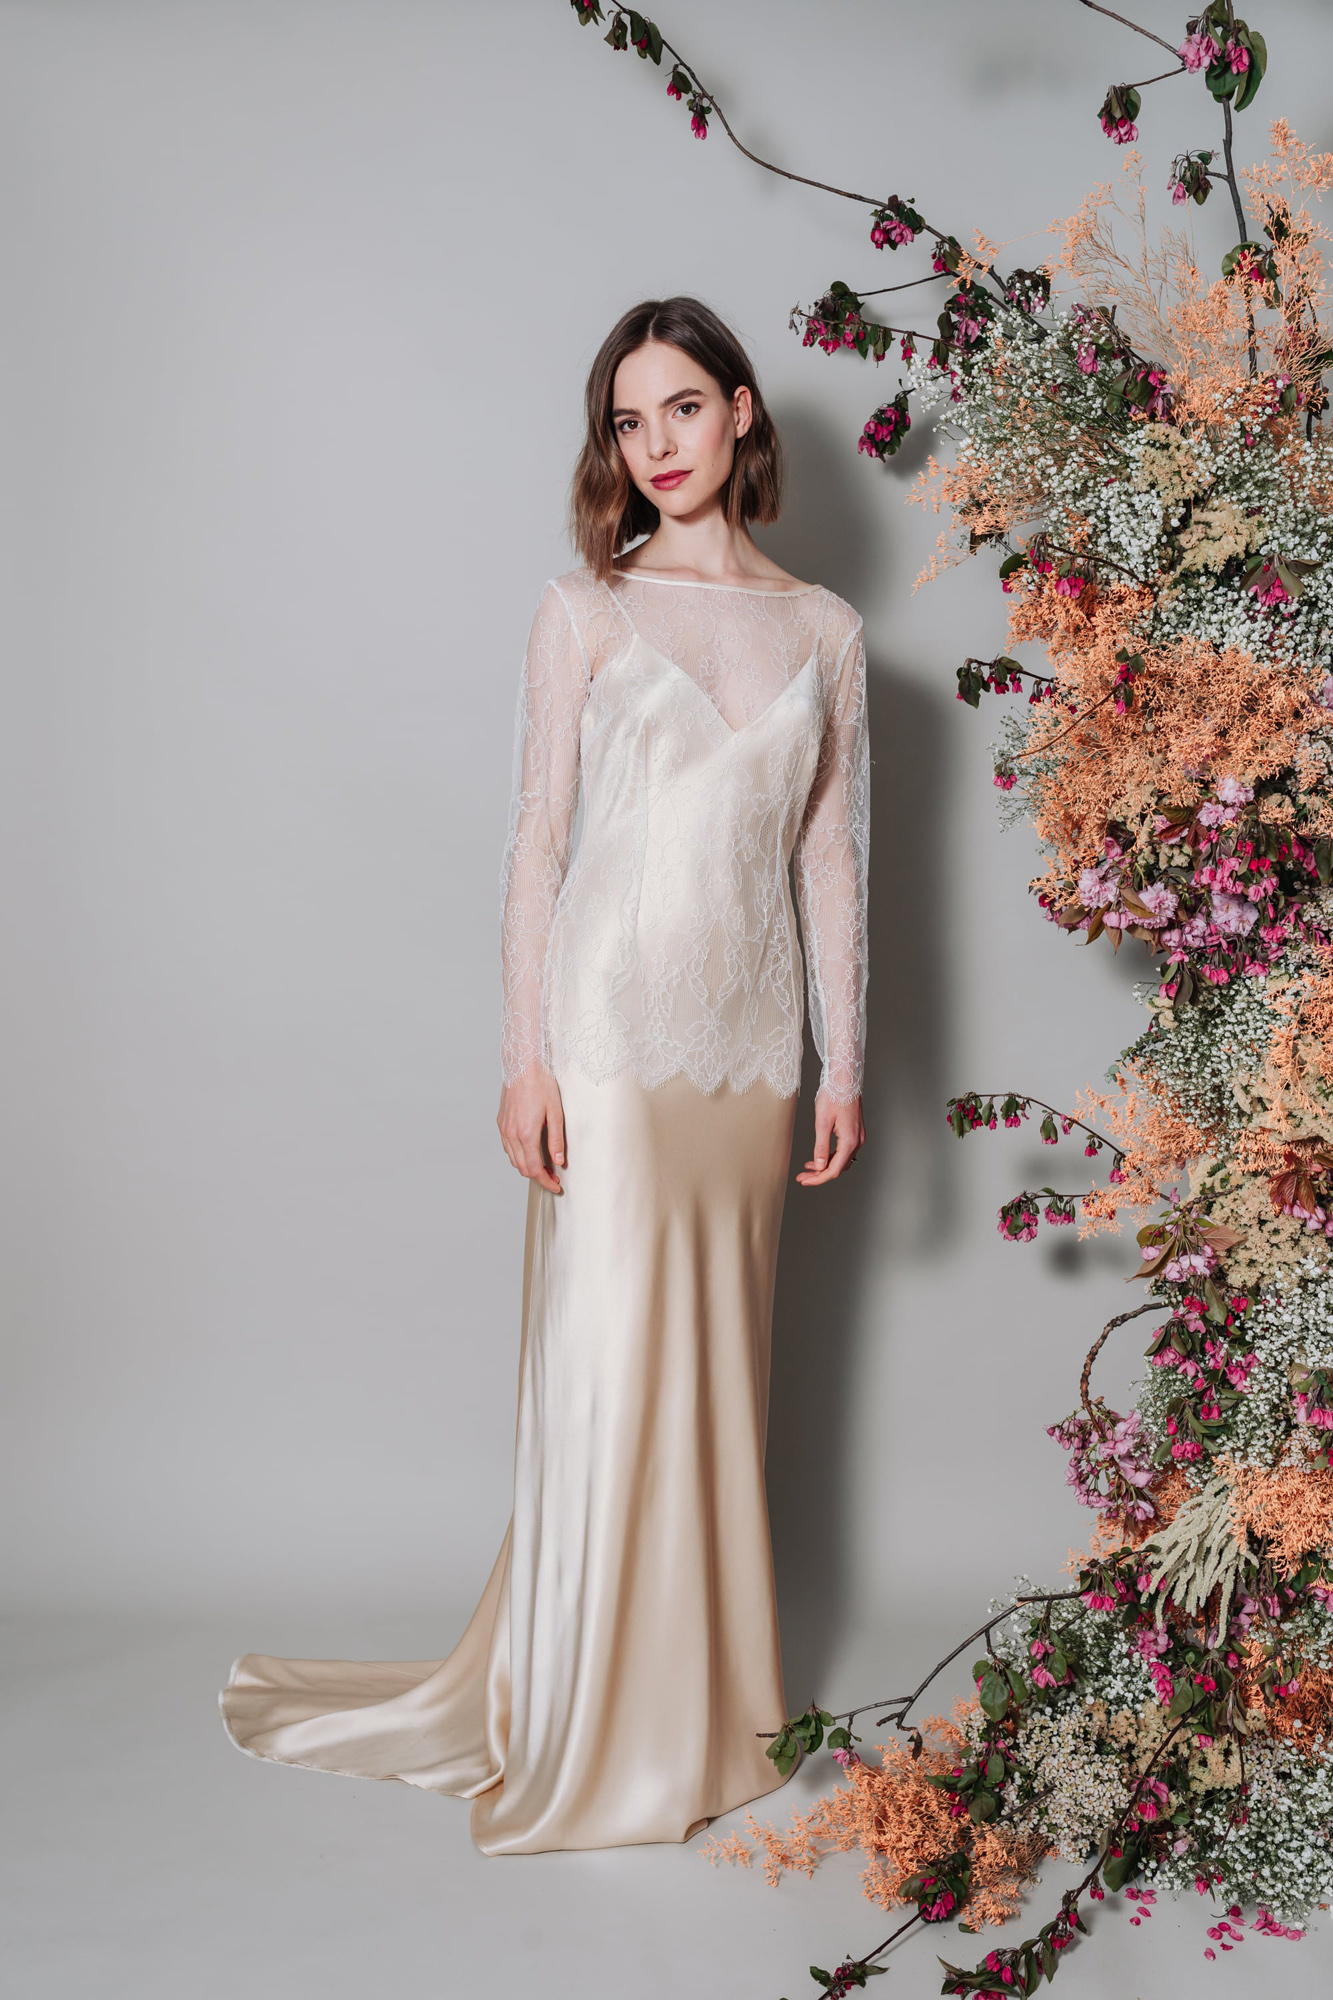 Kate-Beaumont-Sheffield-Thistle-Bridal-Separates-Two-Piece-Lace-Silk-Wedding-Gown-14.jpg